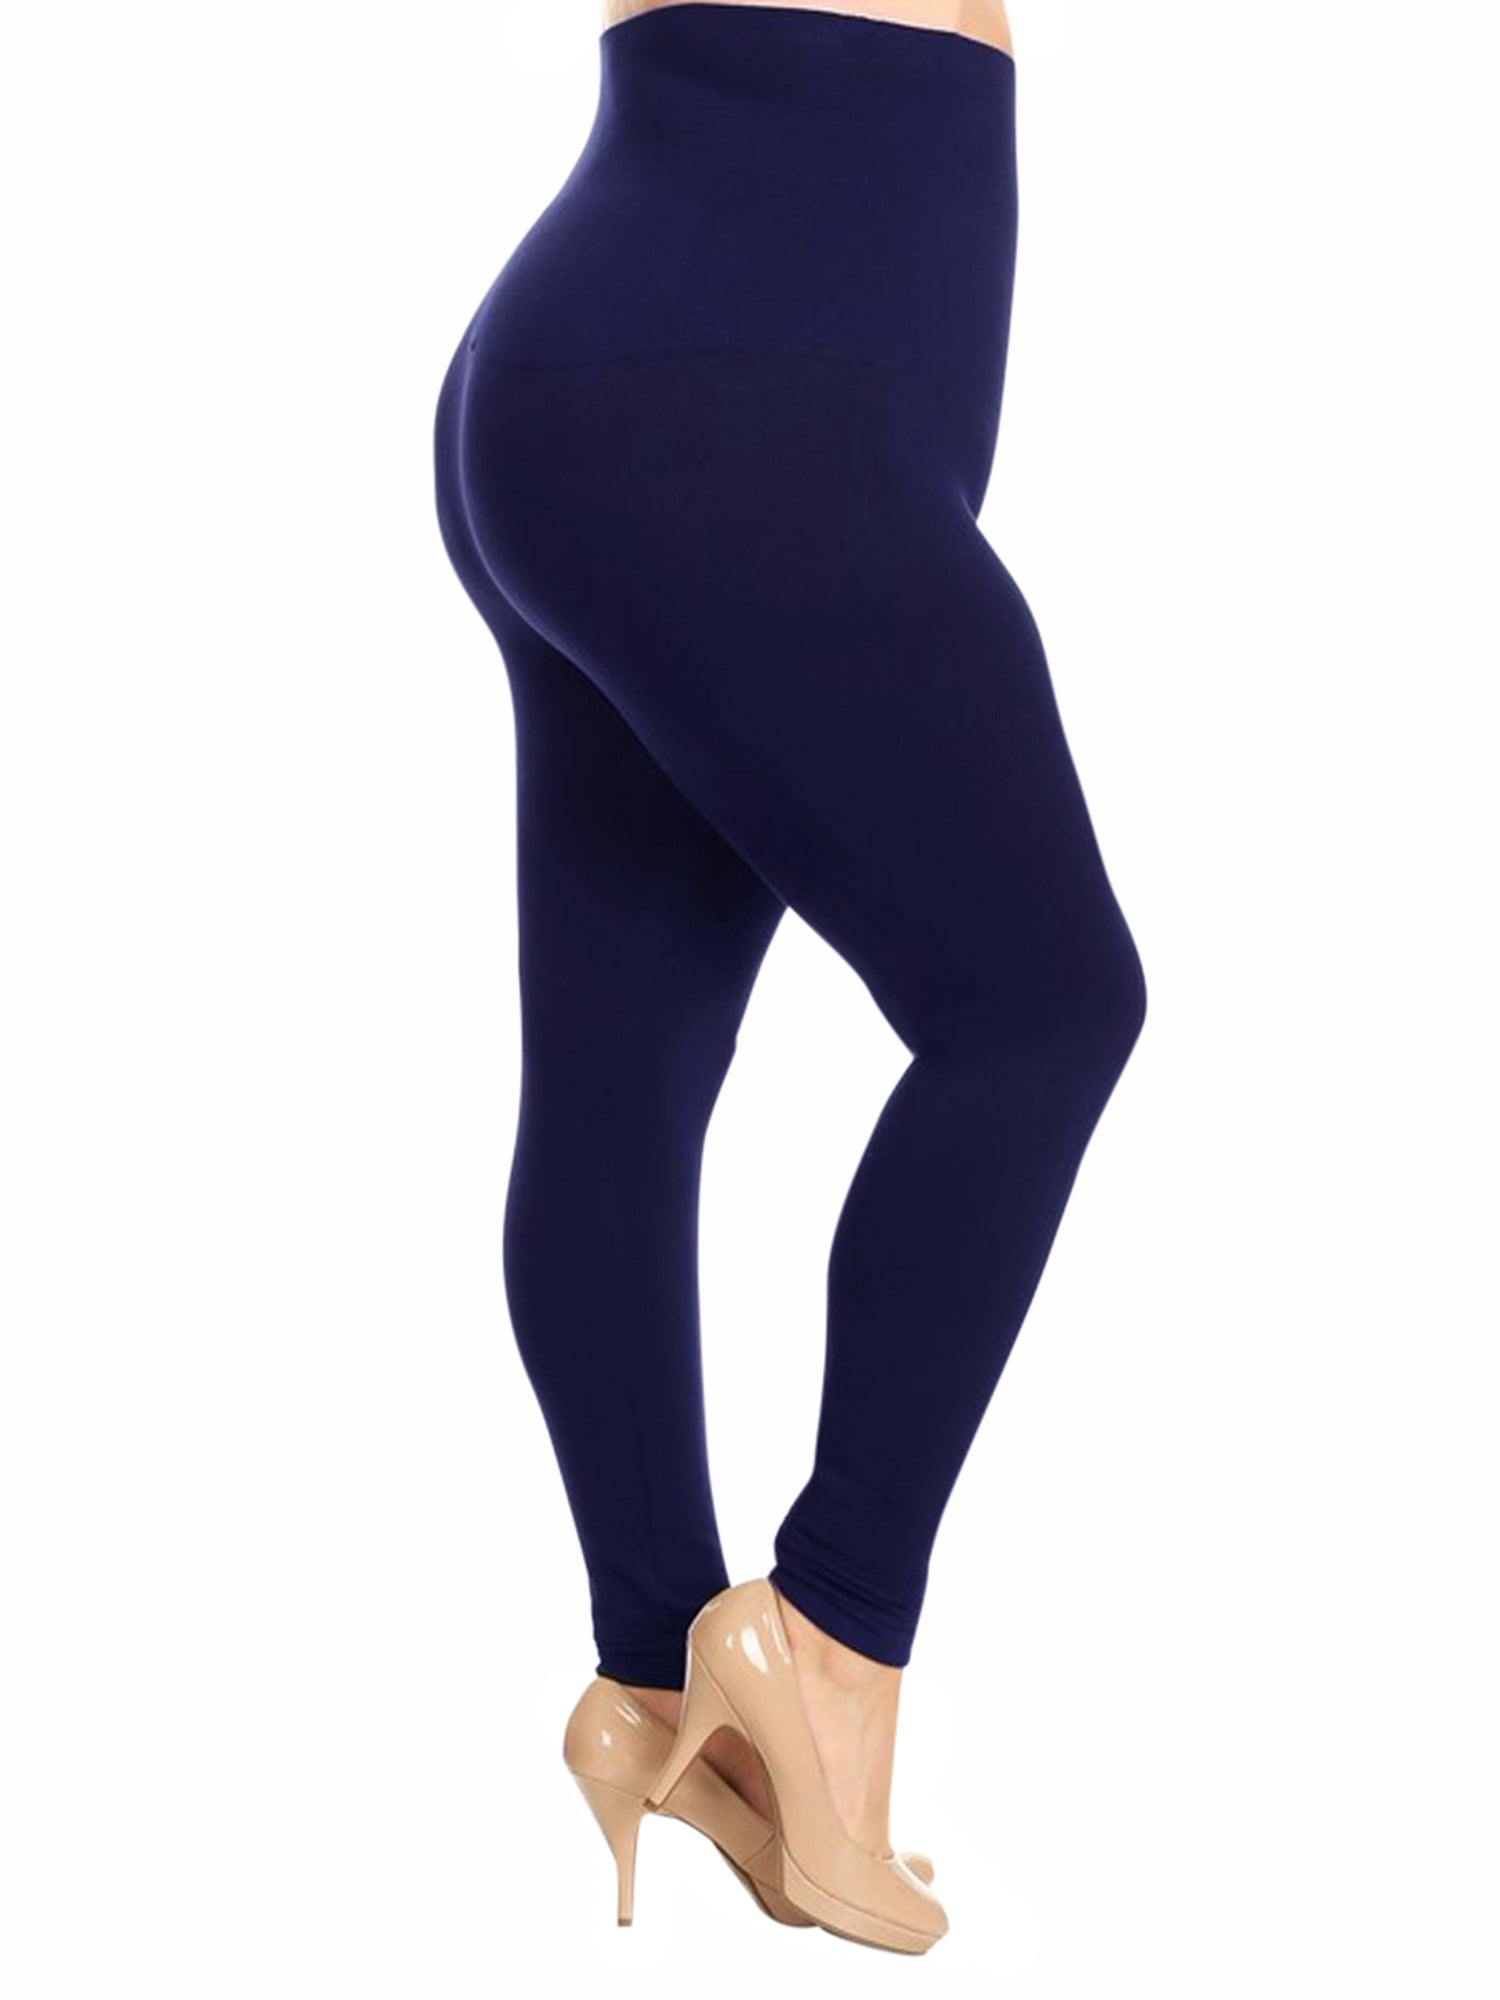 Navy Blue Compression Plus Size Leggings